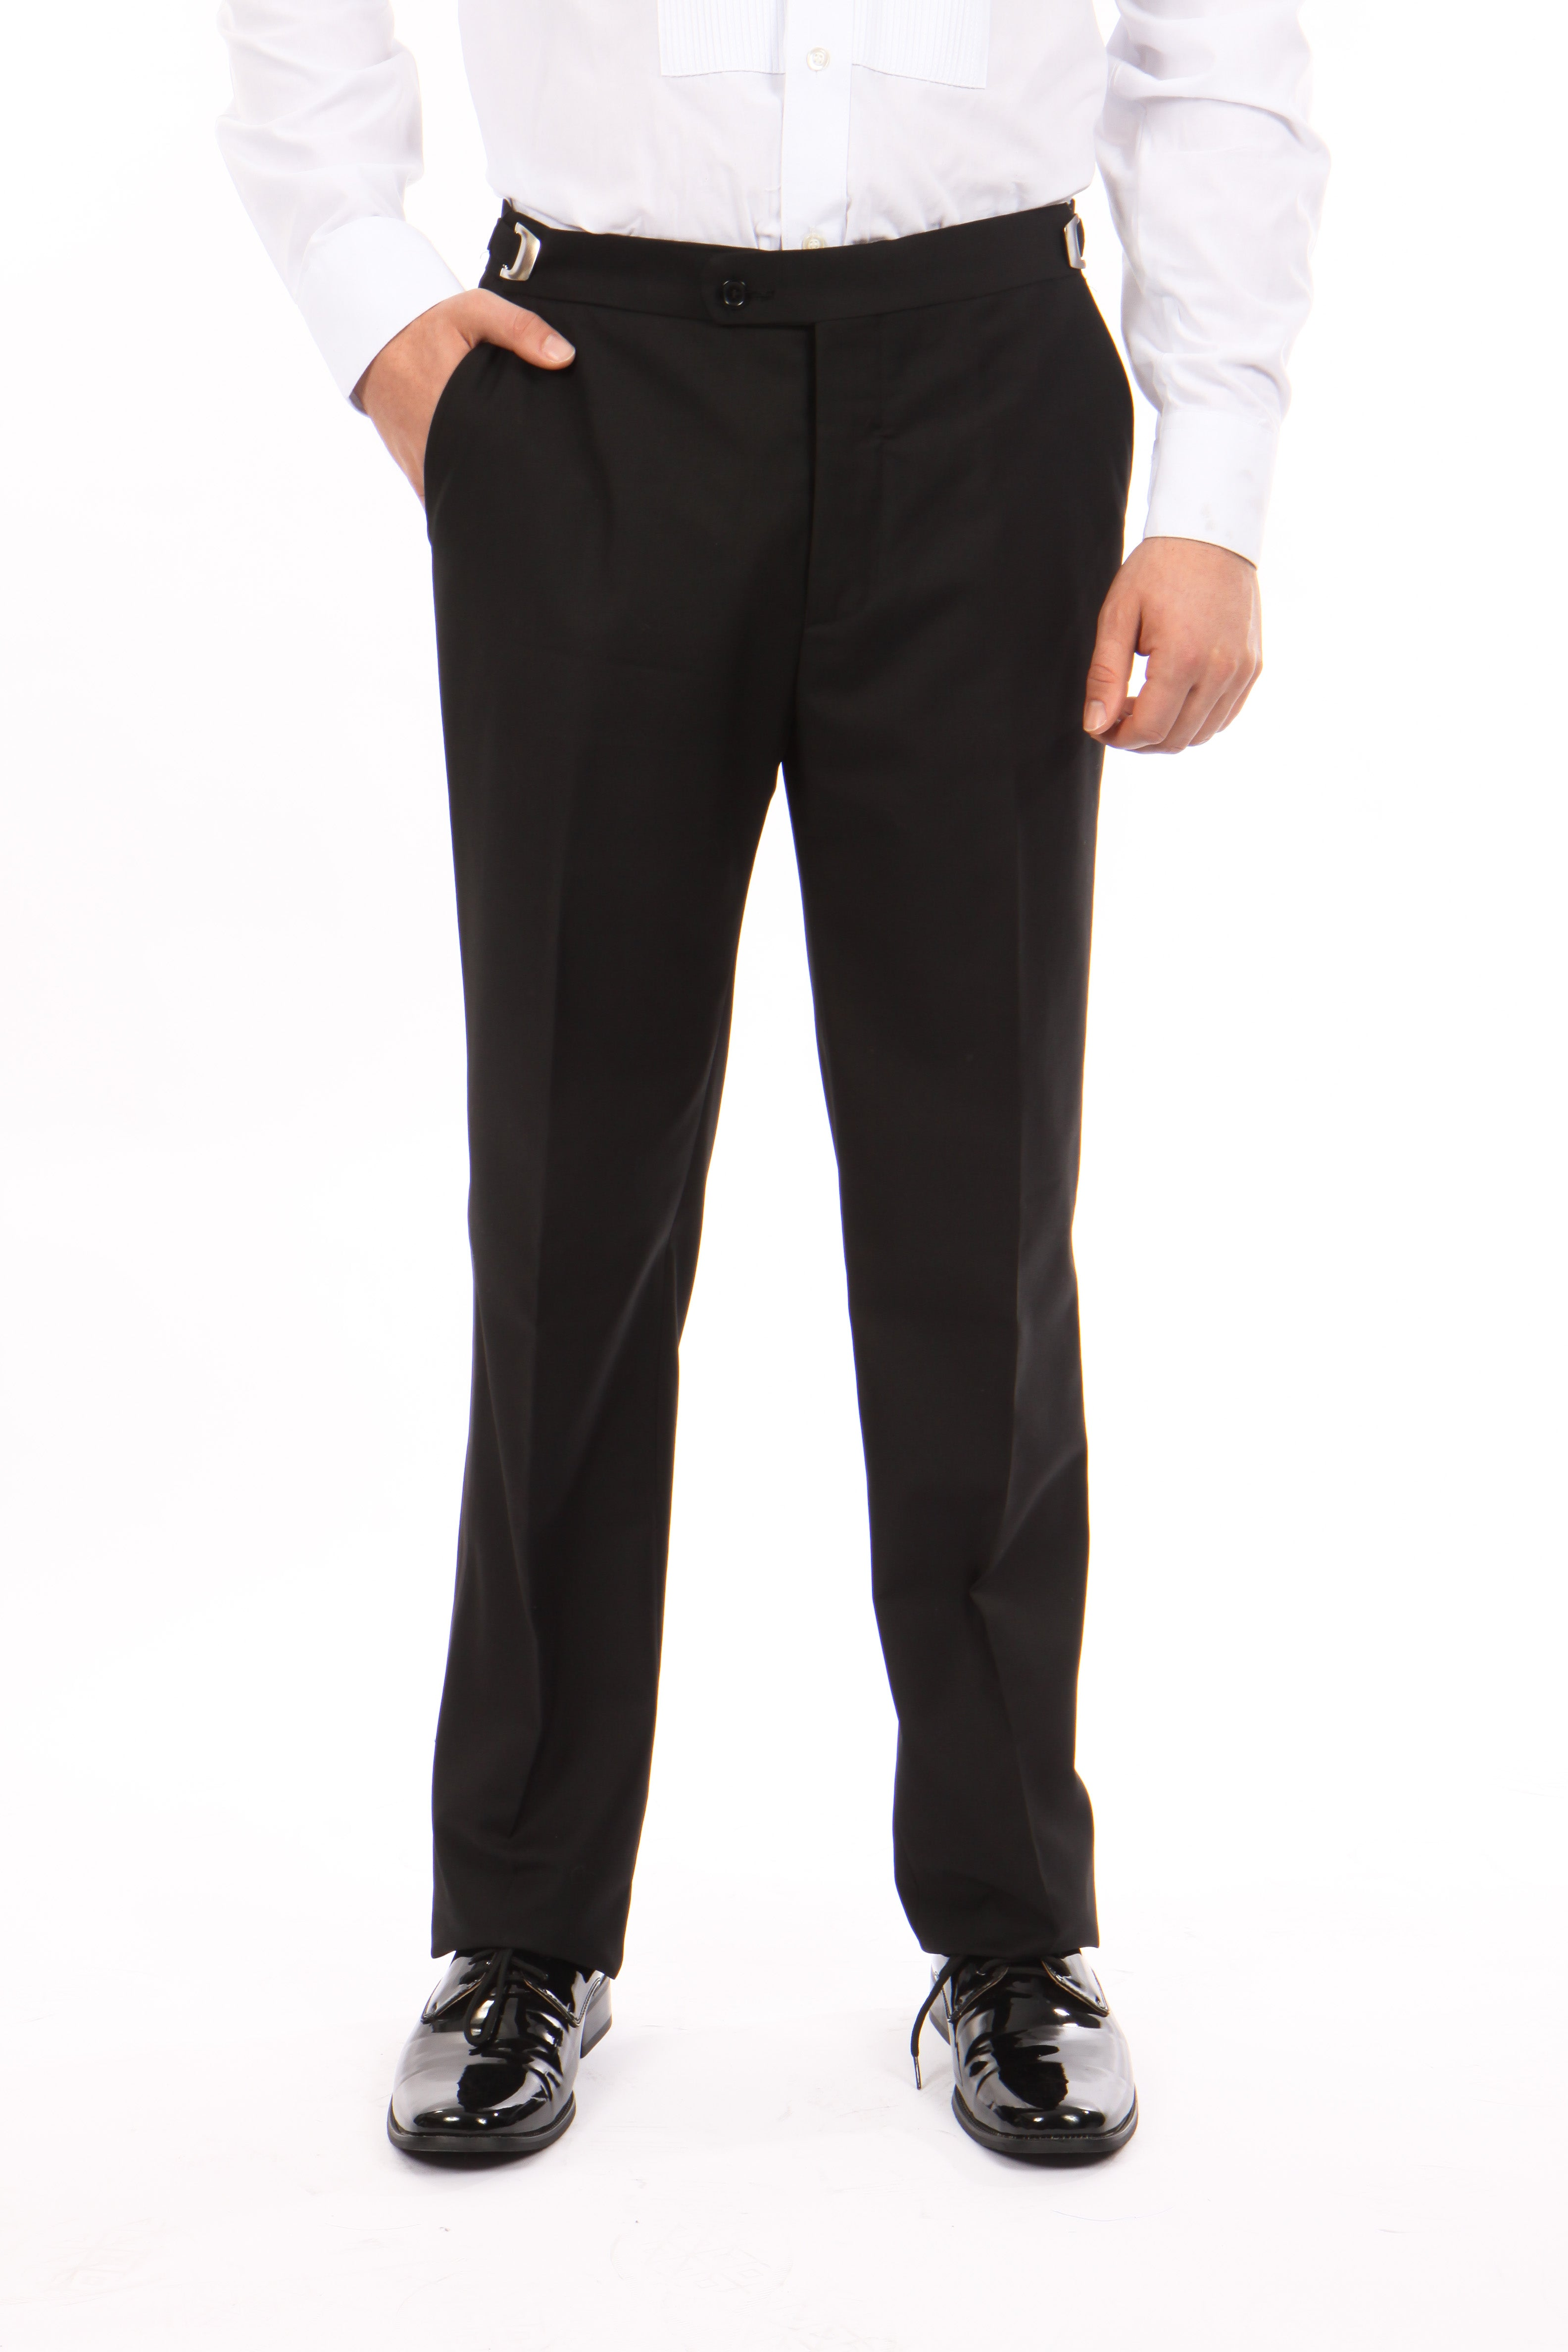 Bryan Michaels Black Tuxedo Dress Pants For Men